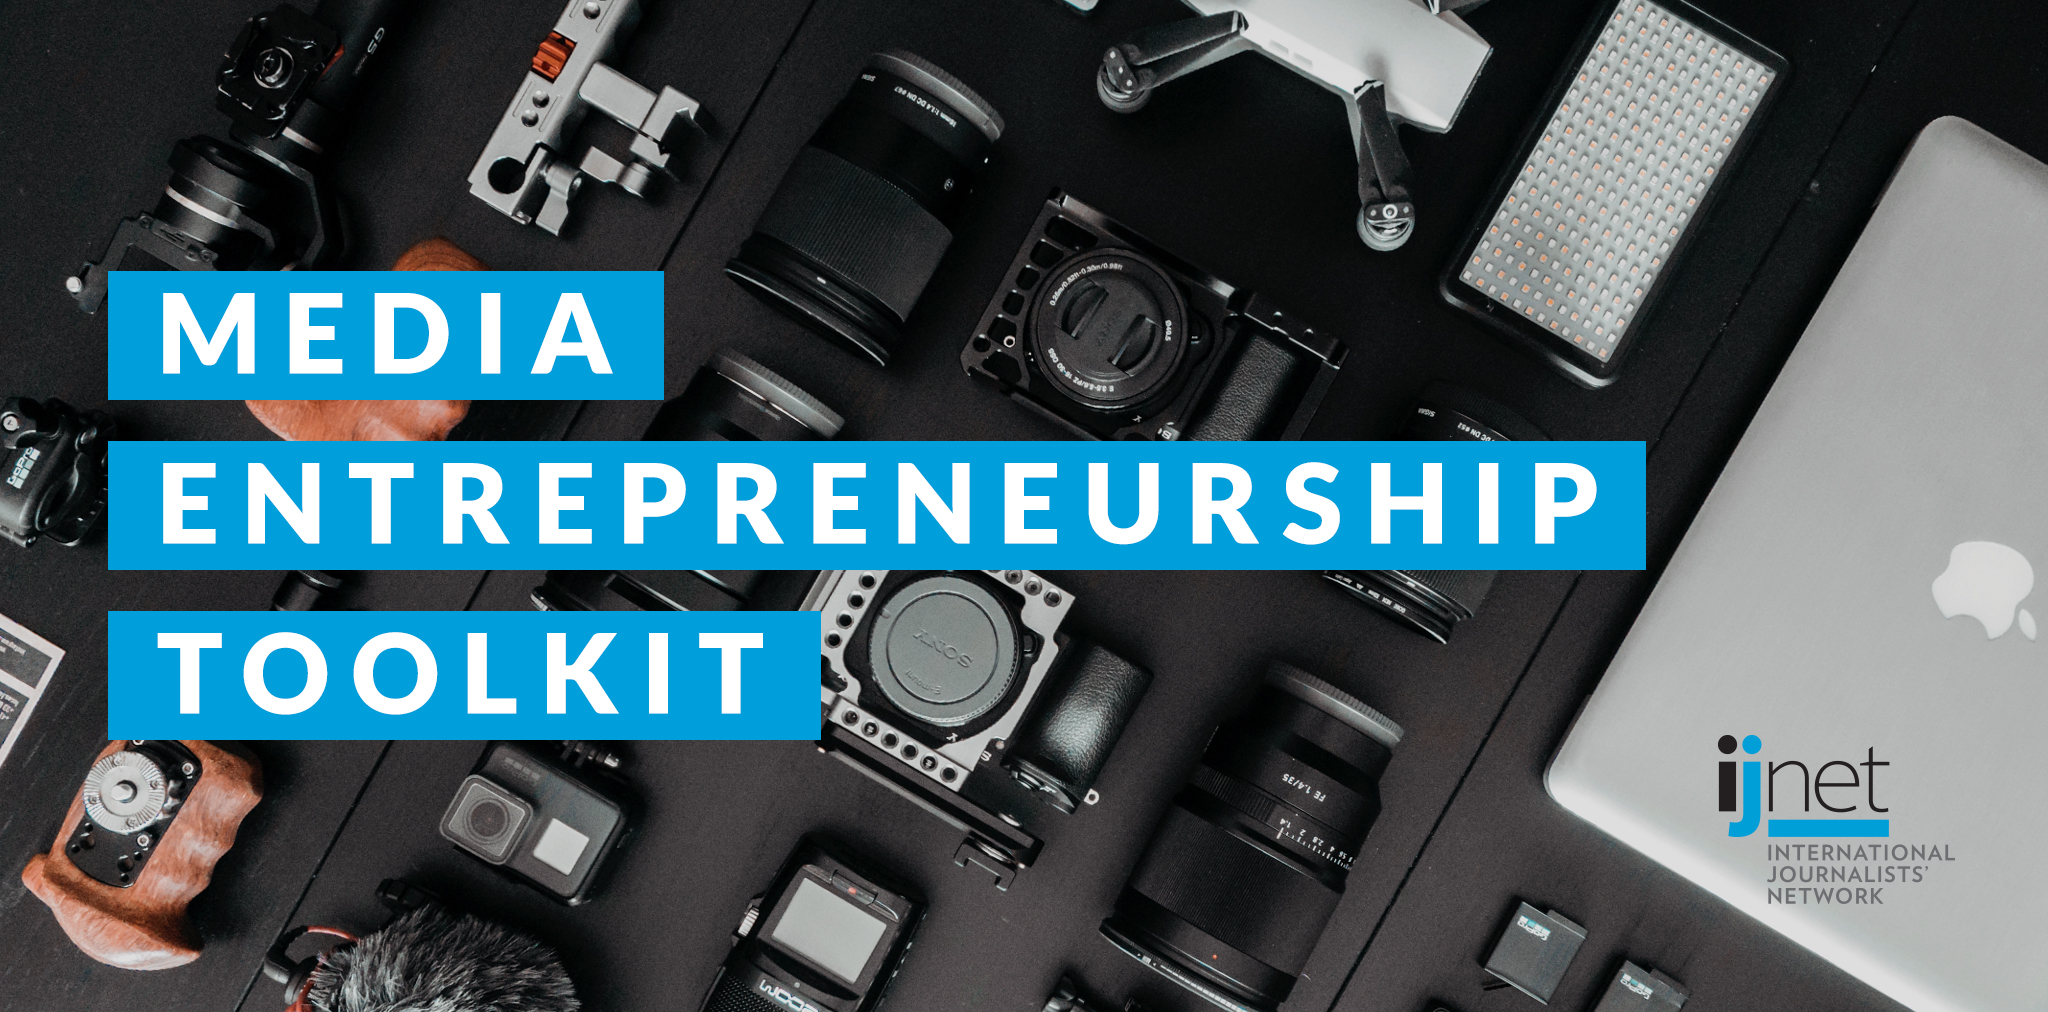 Media Entrepreneurship Toolkit